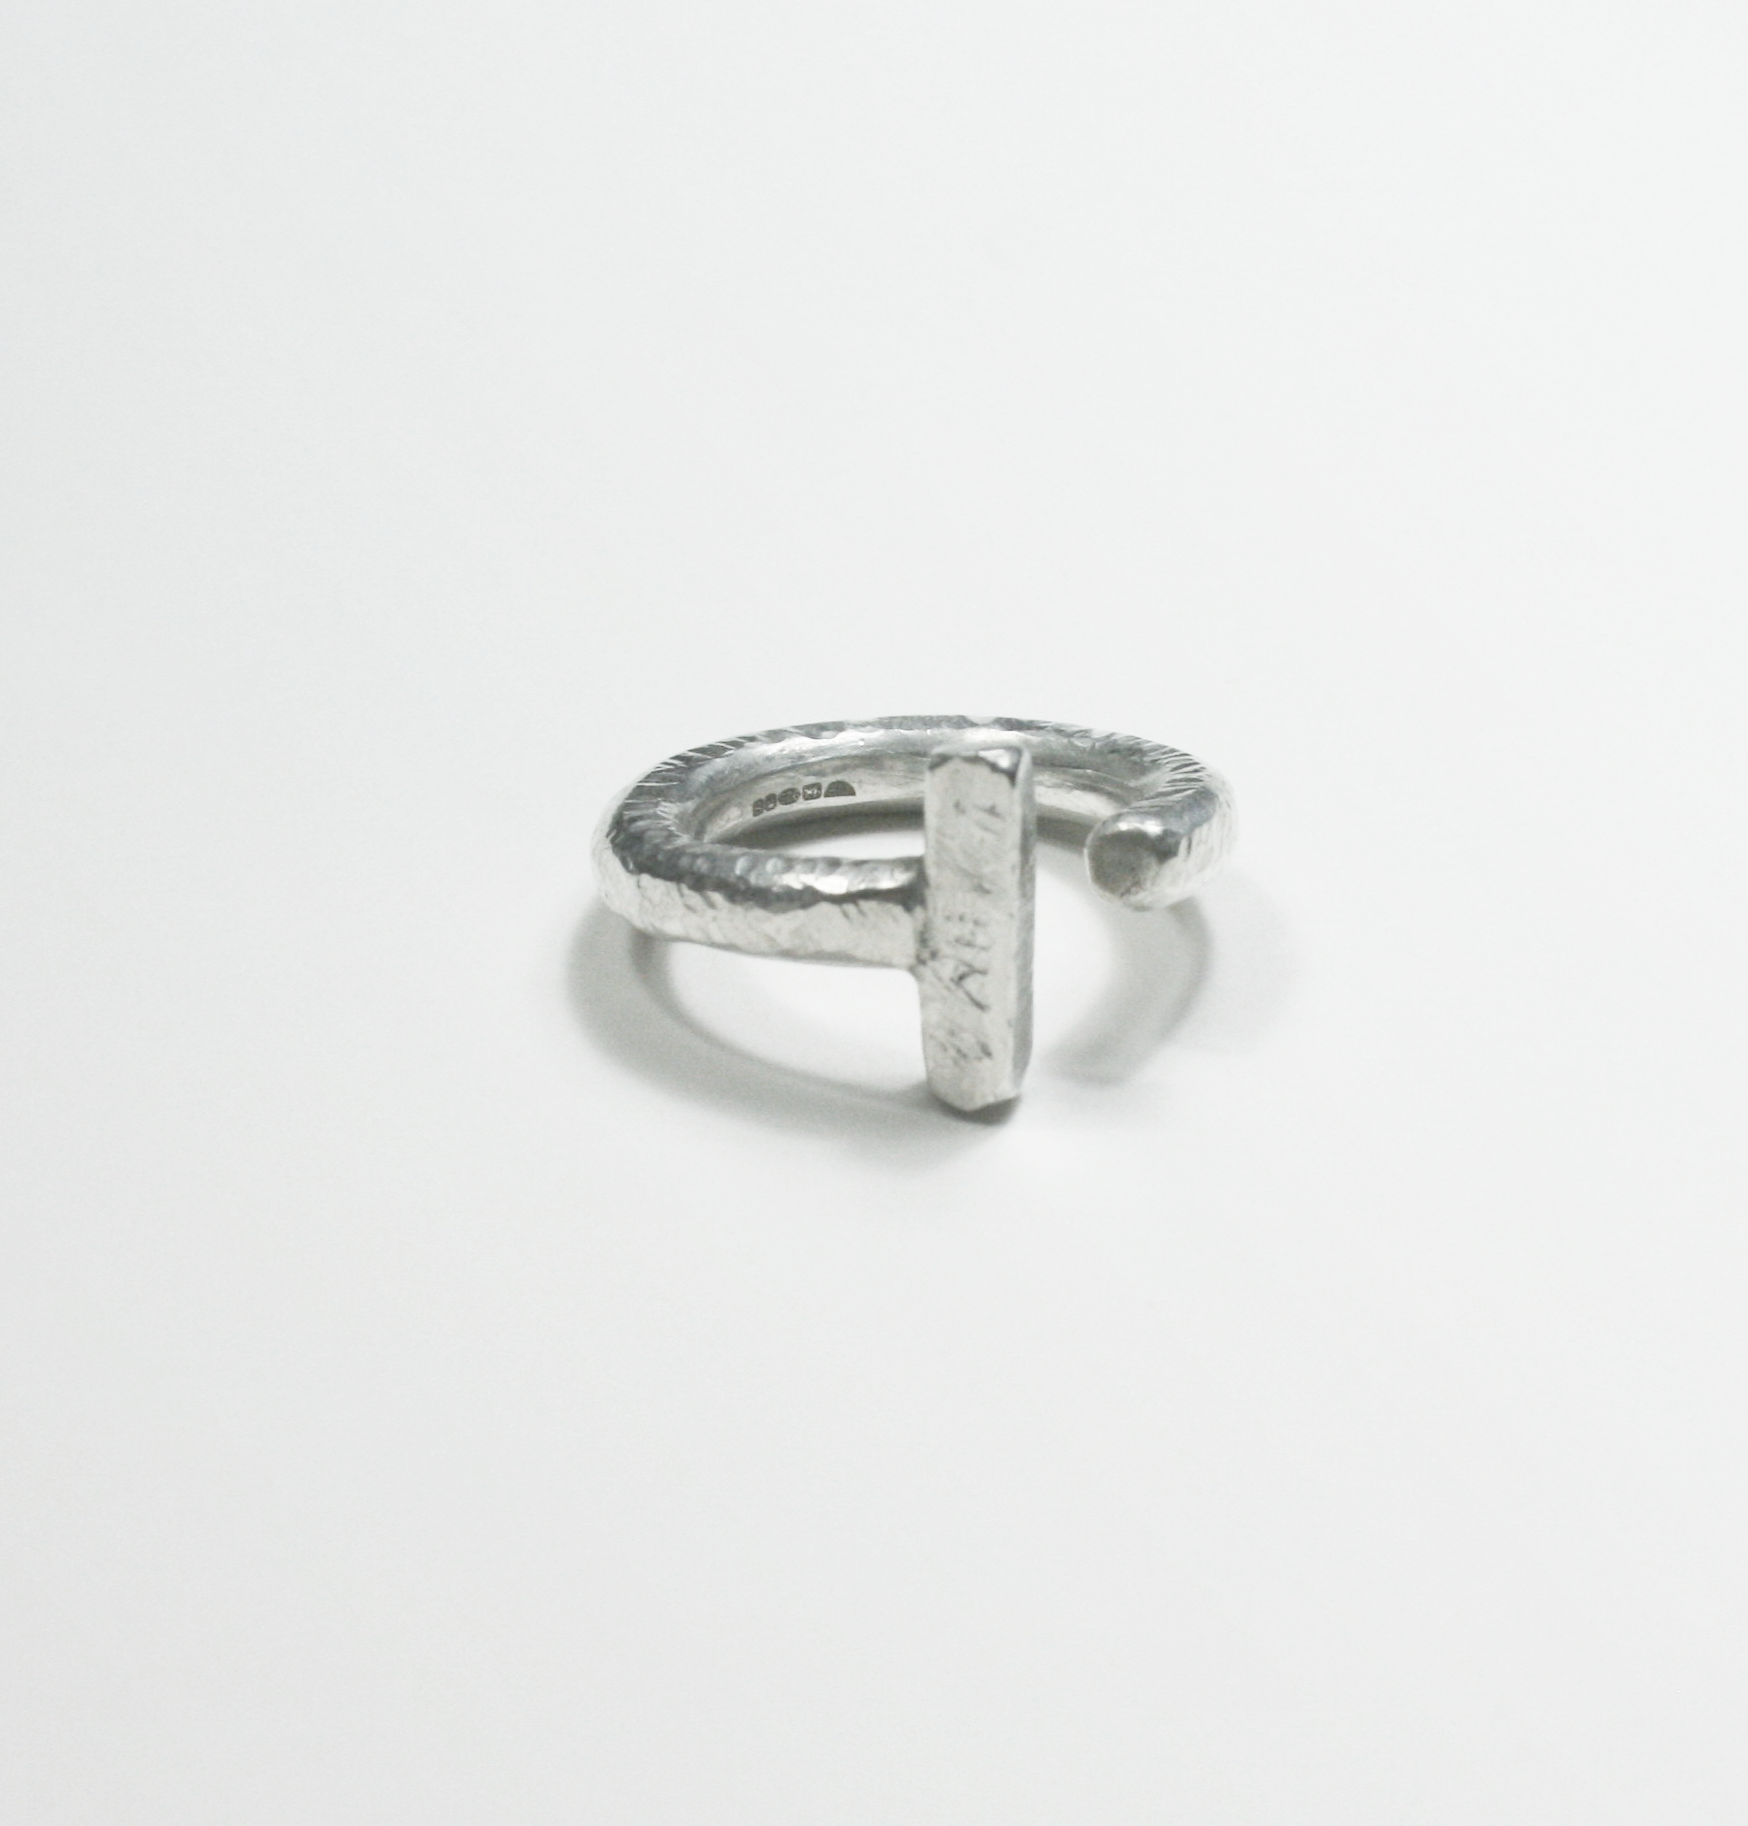 Textured ring - Filia Rex